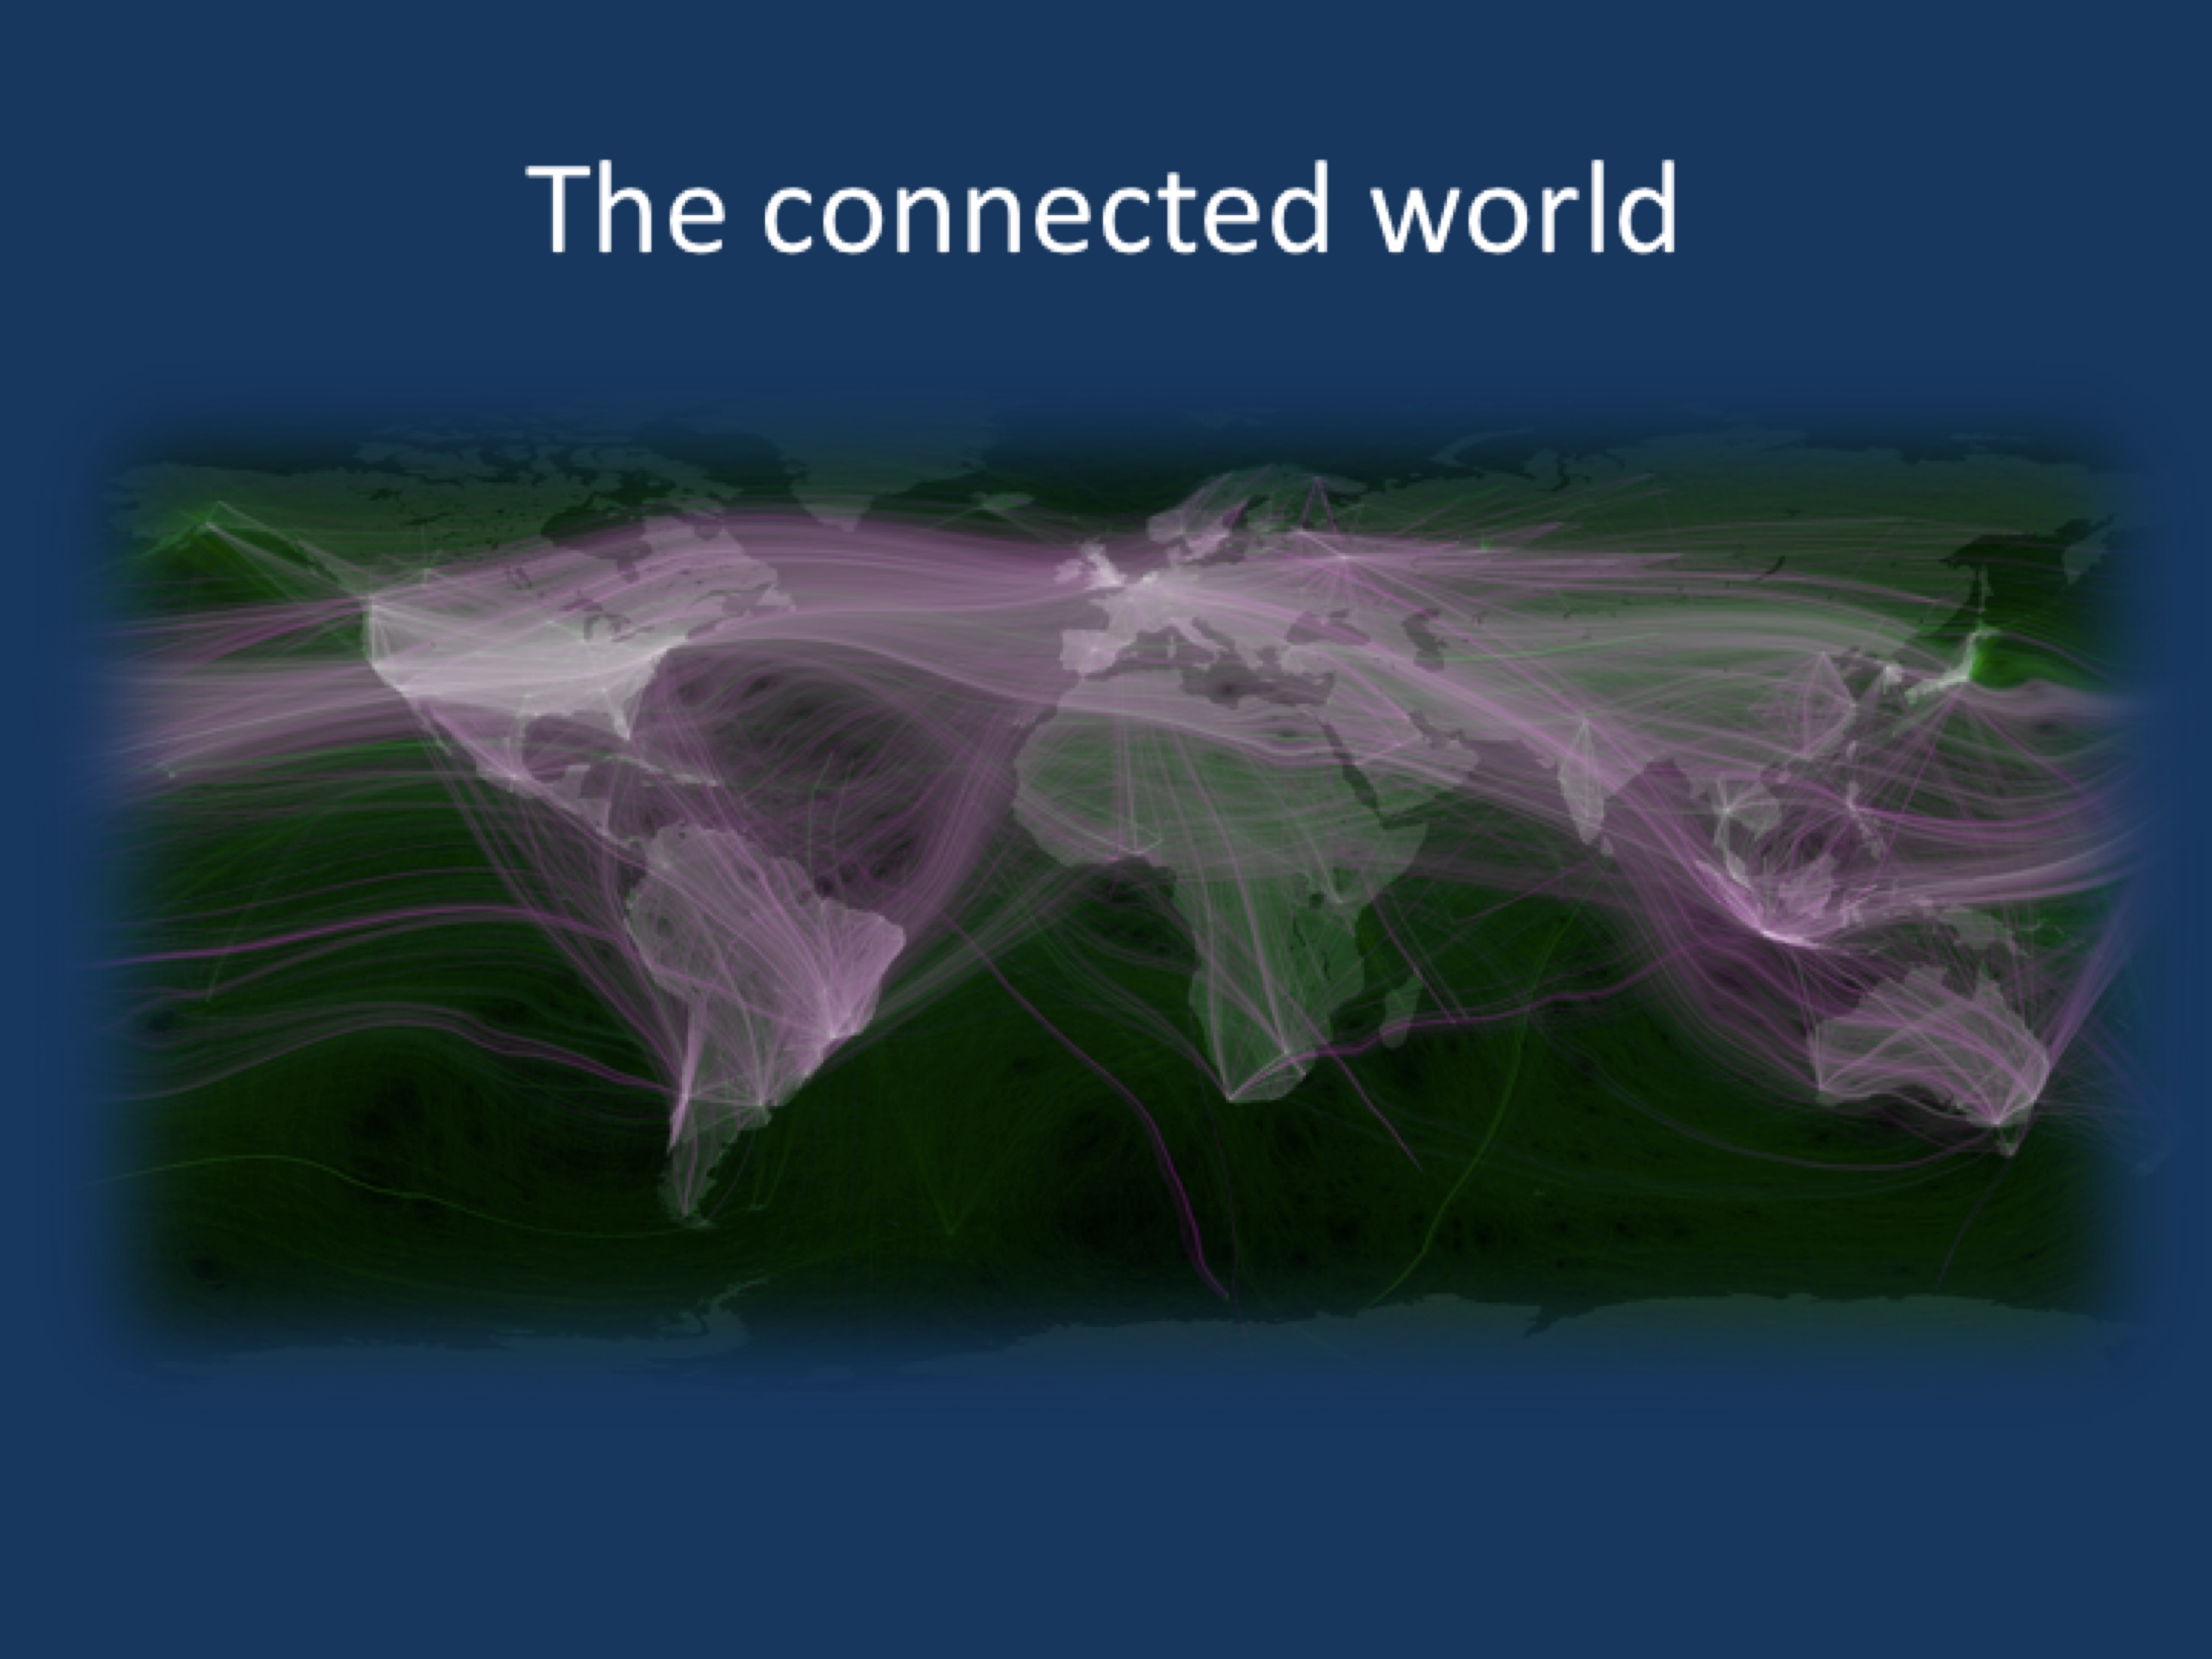 World travel and communications recorded on Twitter. Adapted from Flickr image by Eric Fisher under a CC BY 2.0 licence. Green is physical movement from place to place; purple is @replies from someone in one location to someone in another; combining to white where there is both. Reported trips to Null Island excluded; all other geotags trusted. Endpoints of trips are real data; routes in between are fabricated. Brightness is logarithmic. Data from the Twitter streaming API through September 1, 2011. Continent shapes from Natural Earth. (Image source https://www.flickr.com/photos/walkingsf/6635655755)